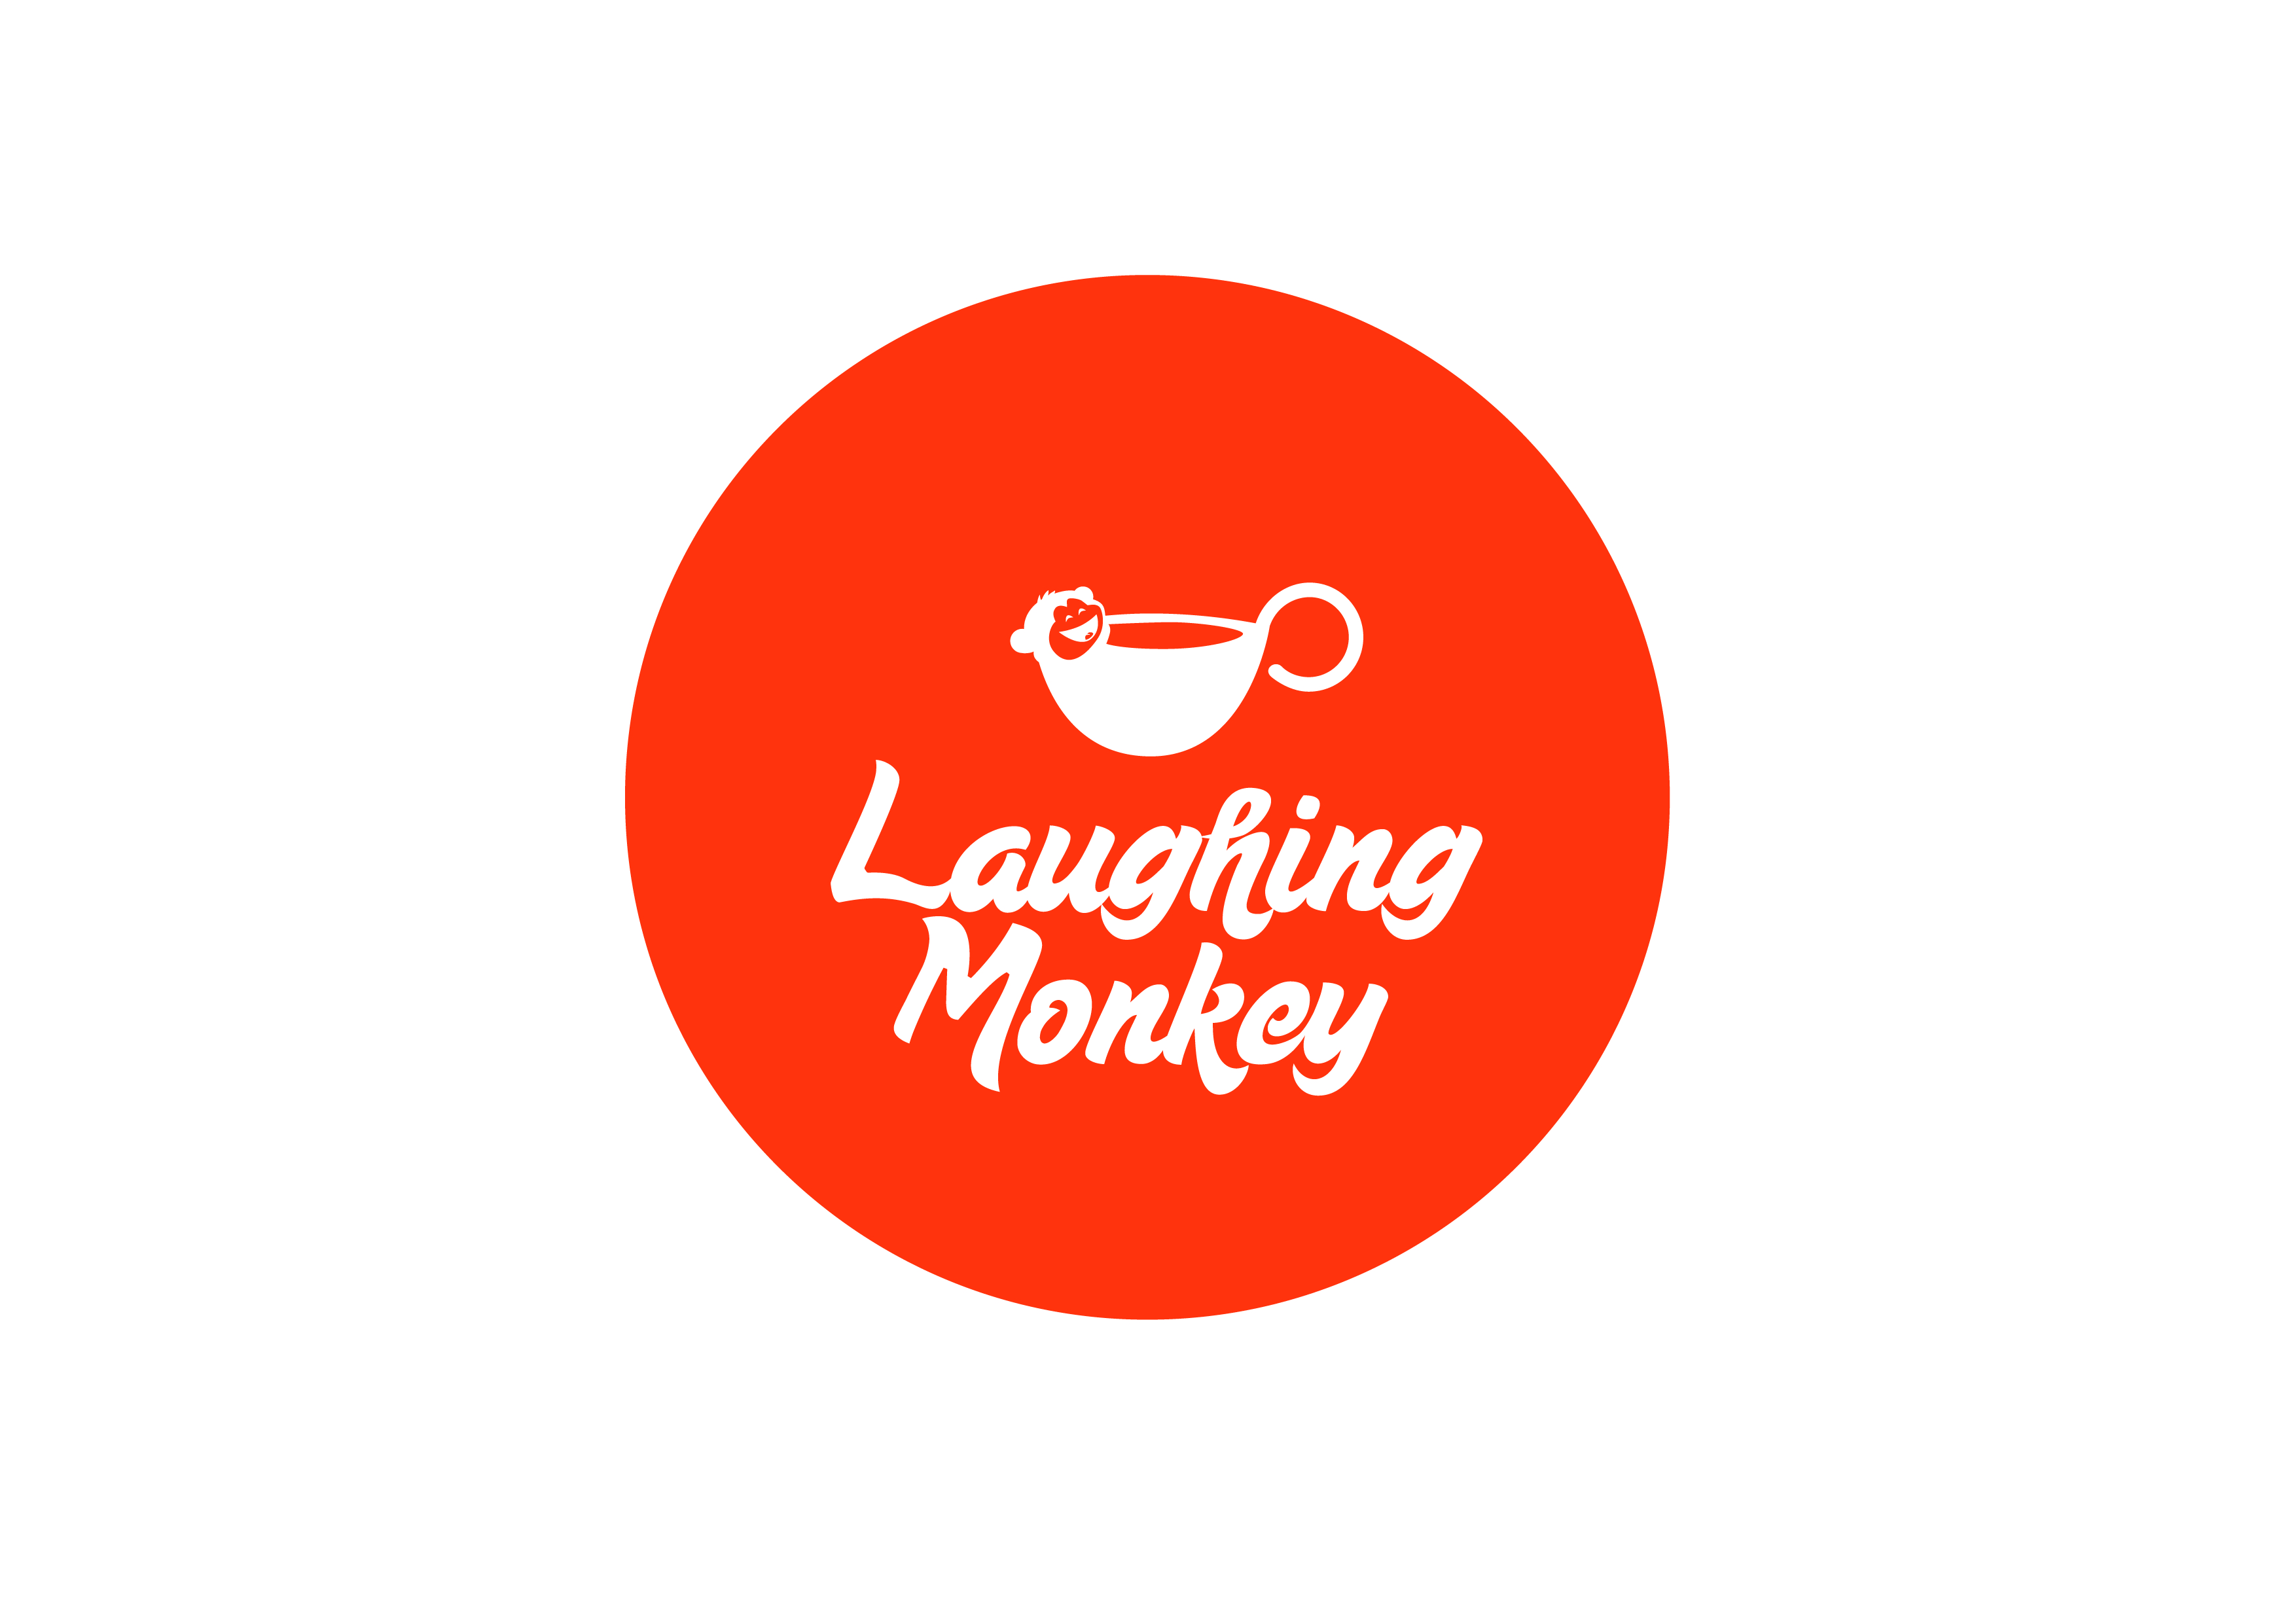 THE LAUGHING MONKEY CAFE